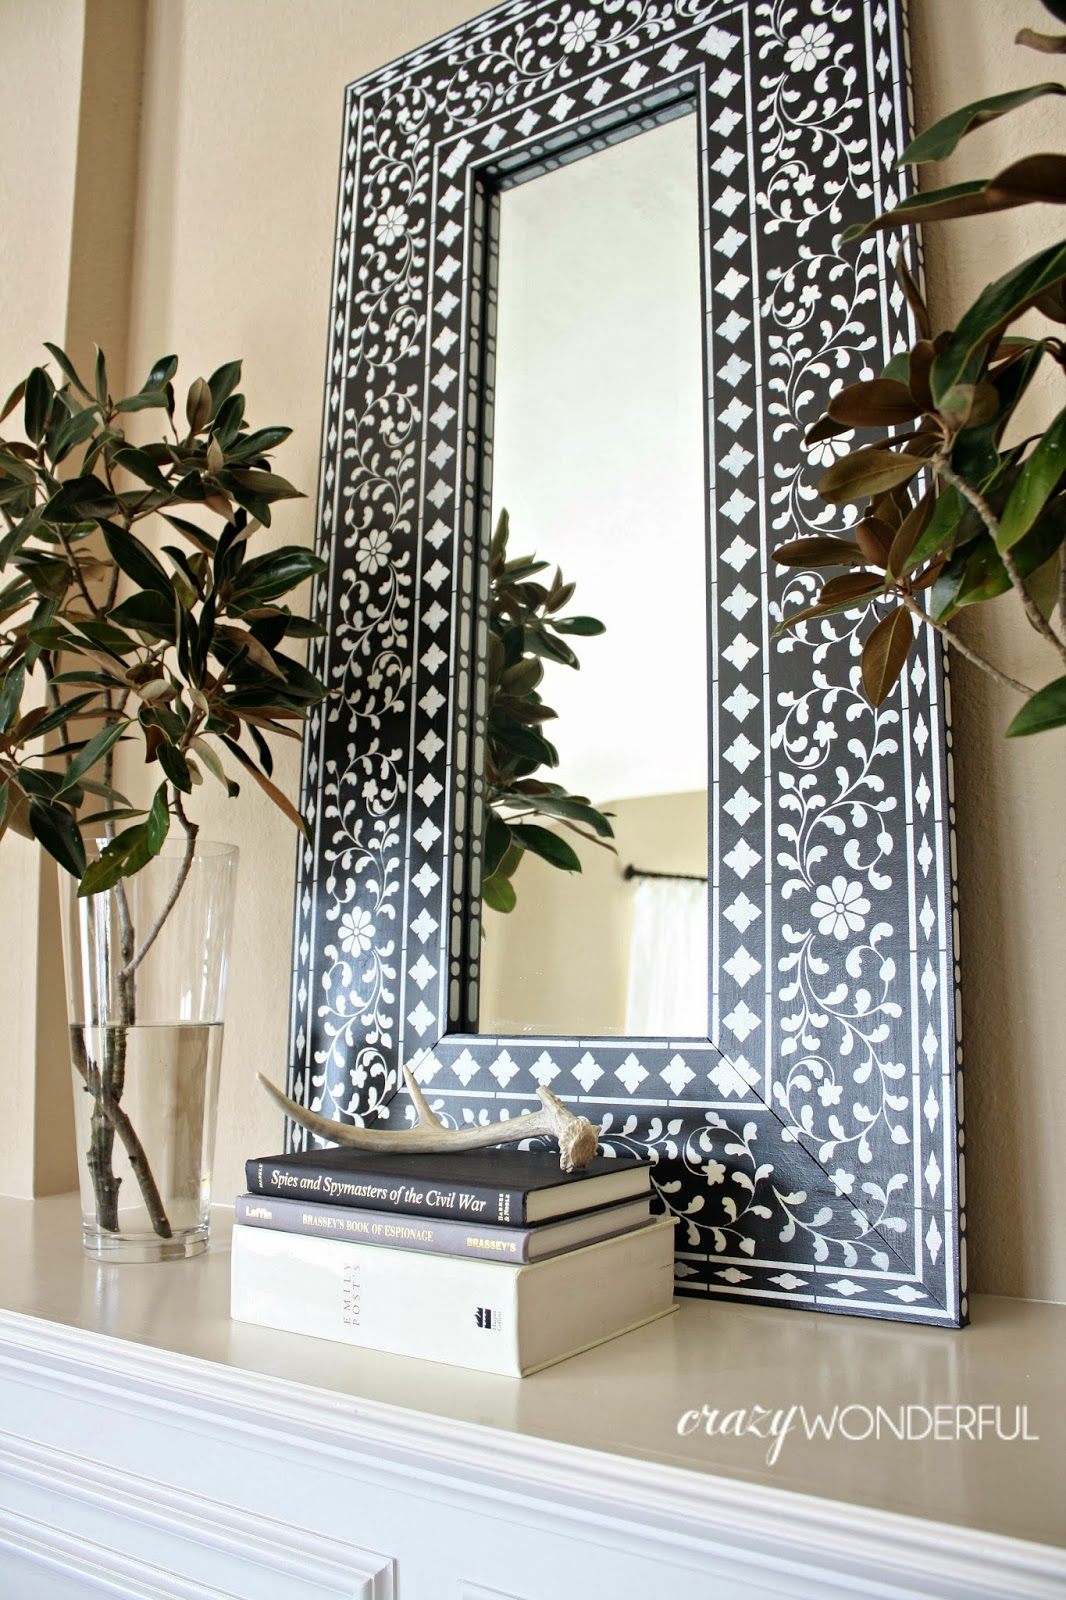 Mirror decorating ideas rich image and wallpaper for Home decorating mirrors